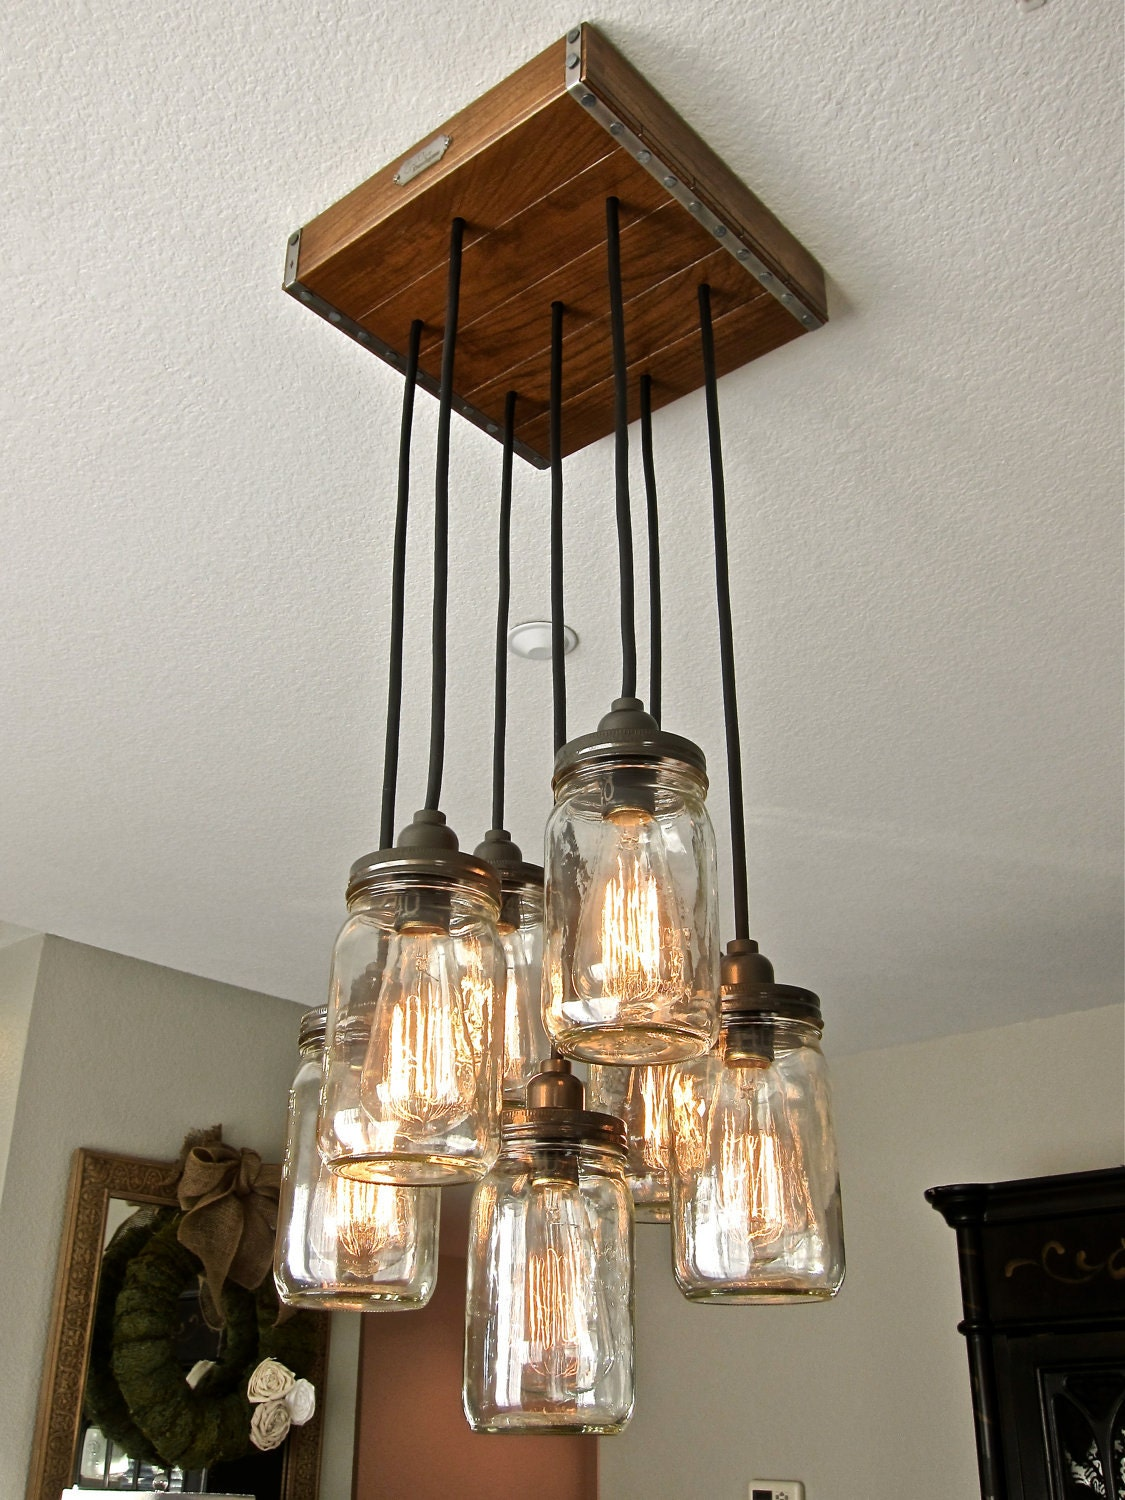 Mason Jar Pendant Light Chandelier W Rustic Style Hardwood